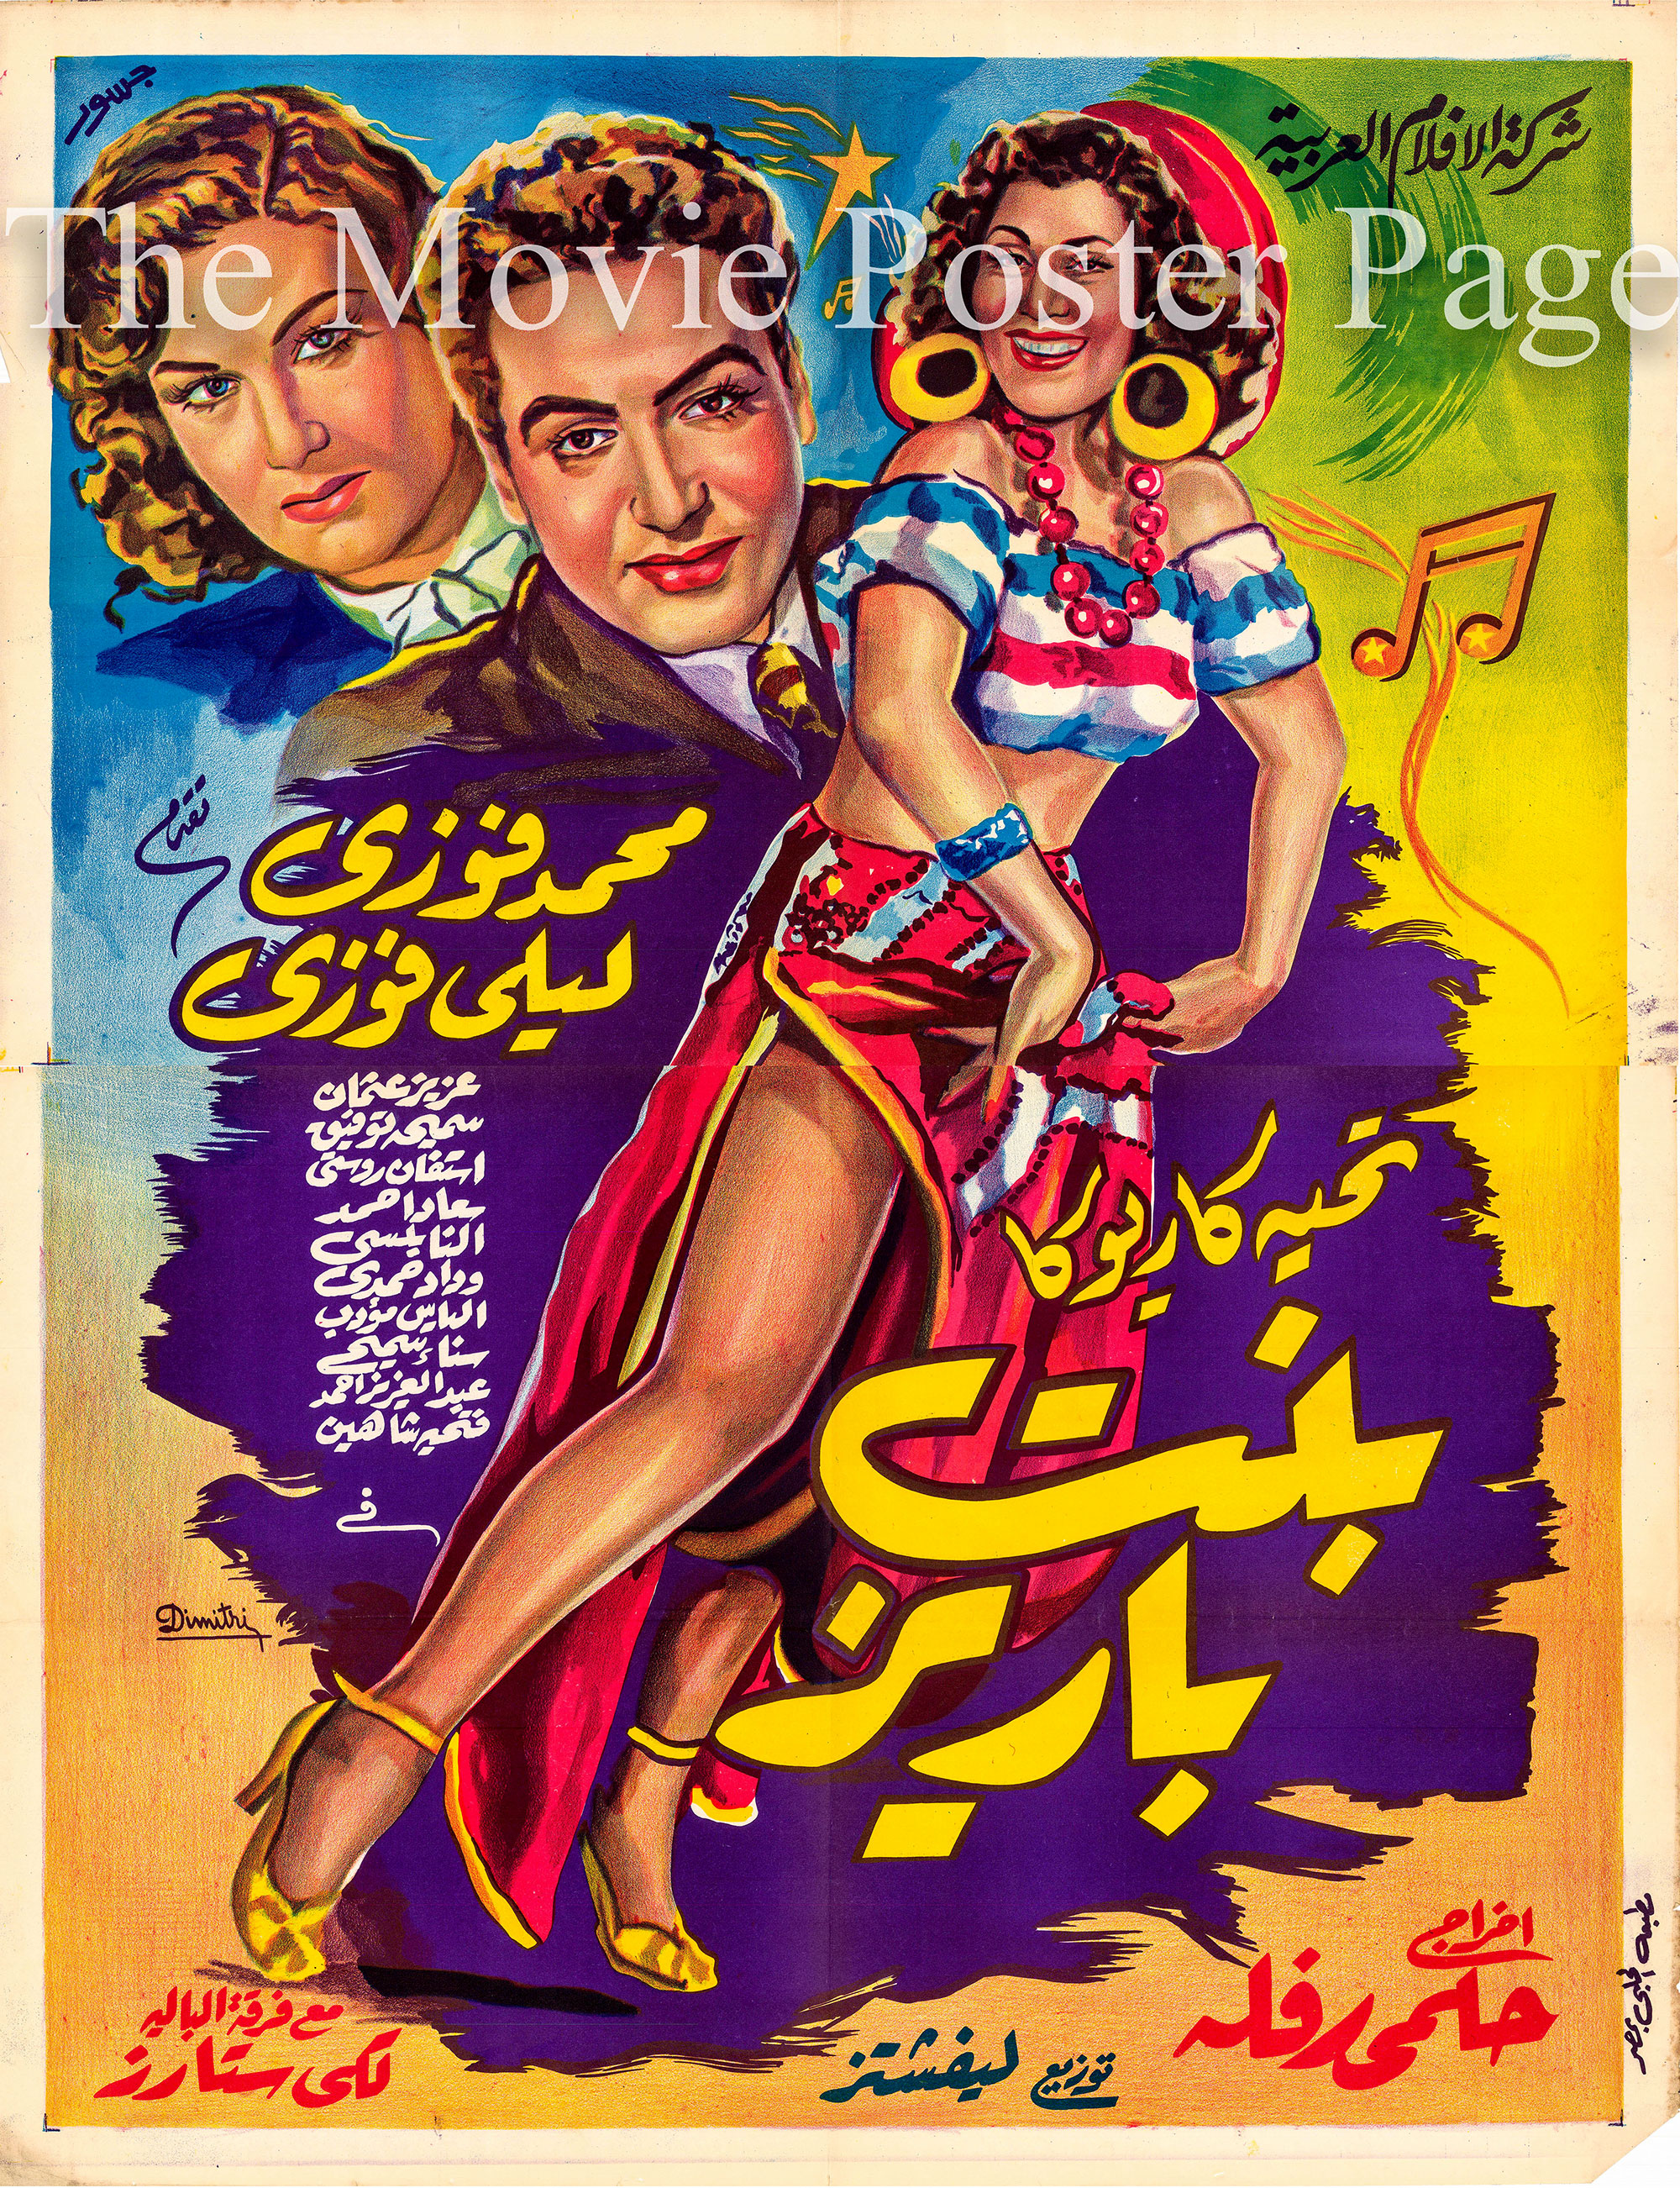 picture is an original Egyptian stone litho promotional poster for the 1950 Helmy Rafla film Girl from Paris starring Taheya Cariocca.